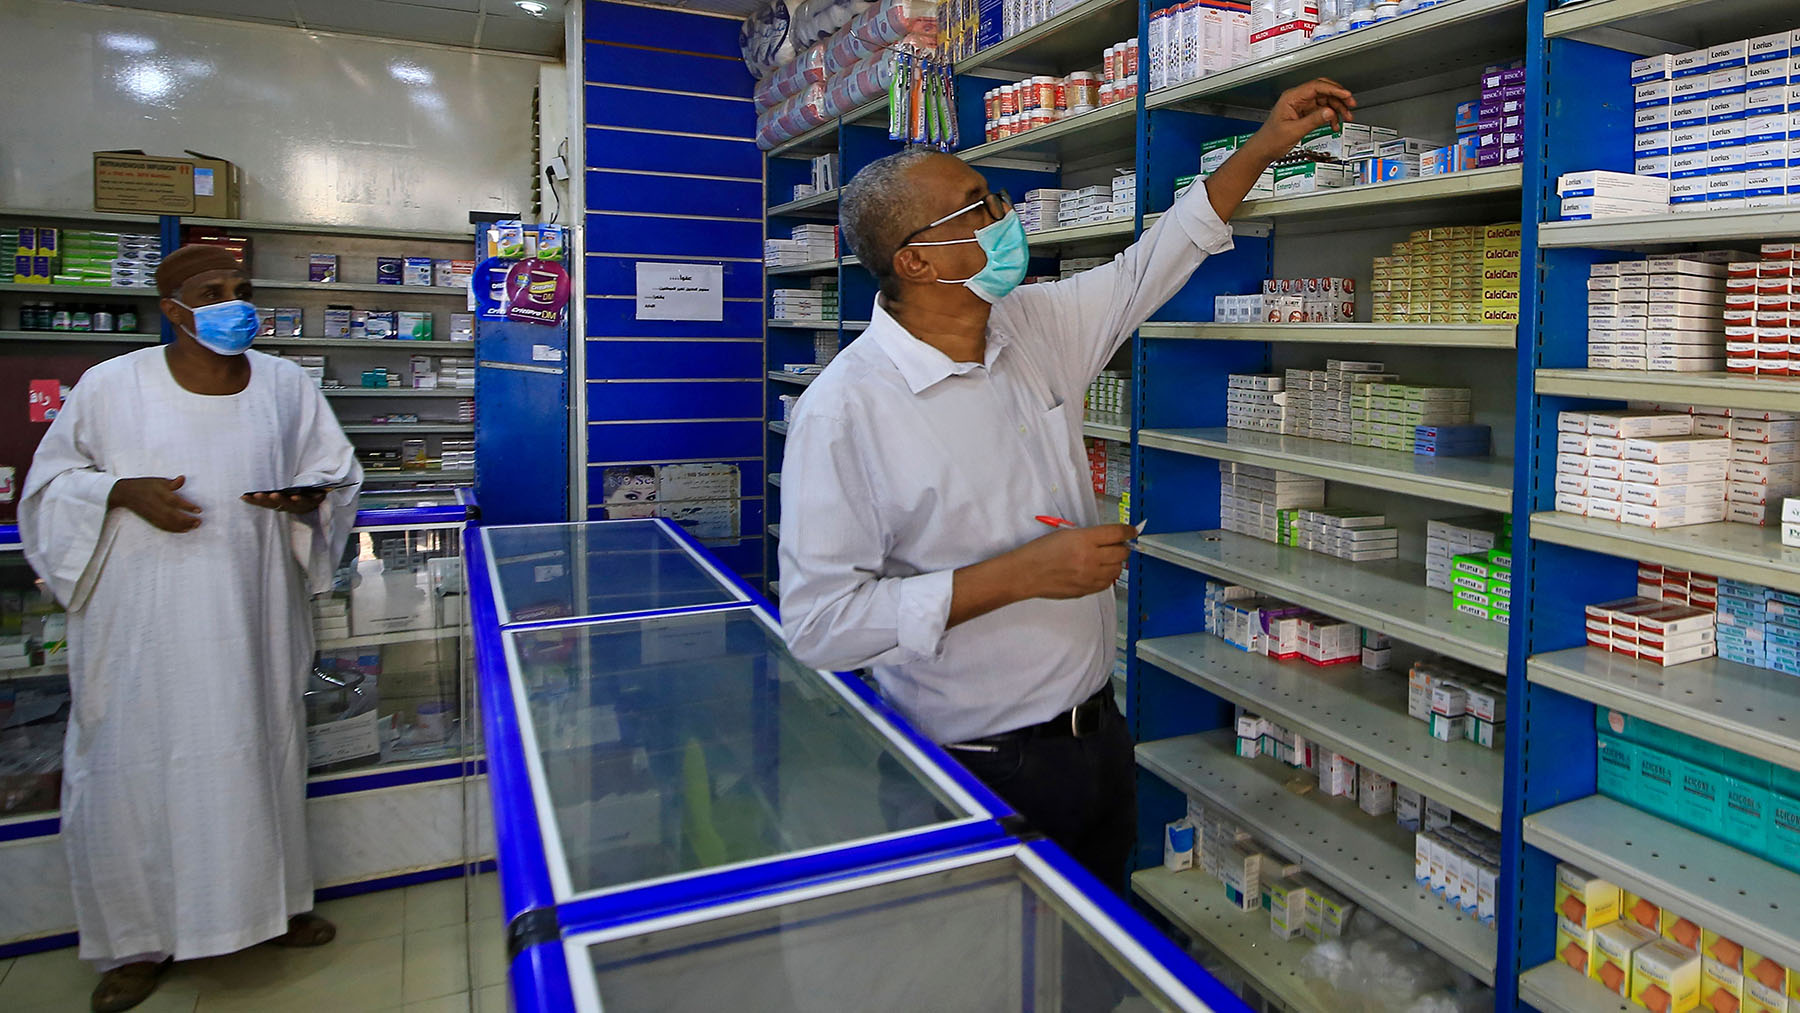 Pharmacy owner Abdulaziz Othman, wearing a protective mask, serves a costumer at his drugstore in the Sudanese capital, Khartoum, on June 18, 2020, amid acute shortages of medicine as the country fights to control the spread of coronavirus. (Photo by Ashraf Shazly/AFP via Getty Images)